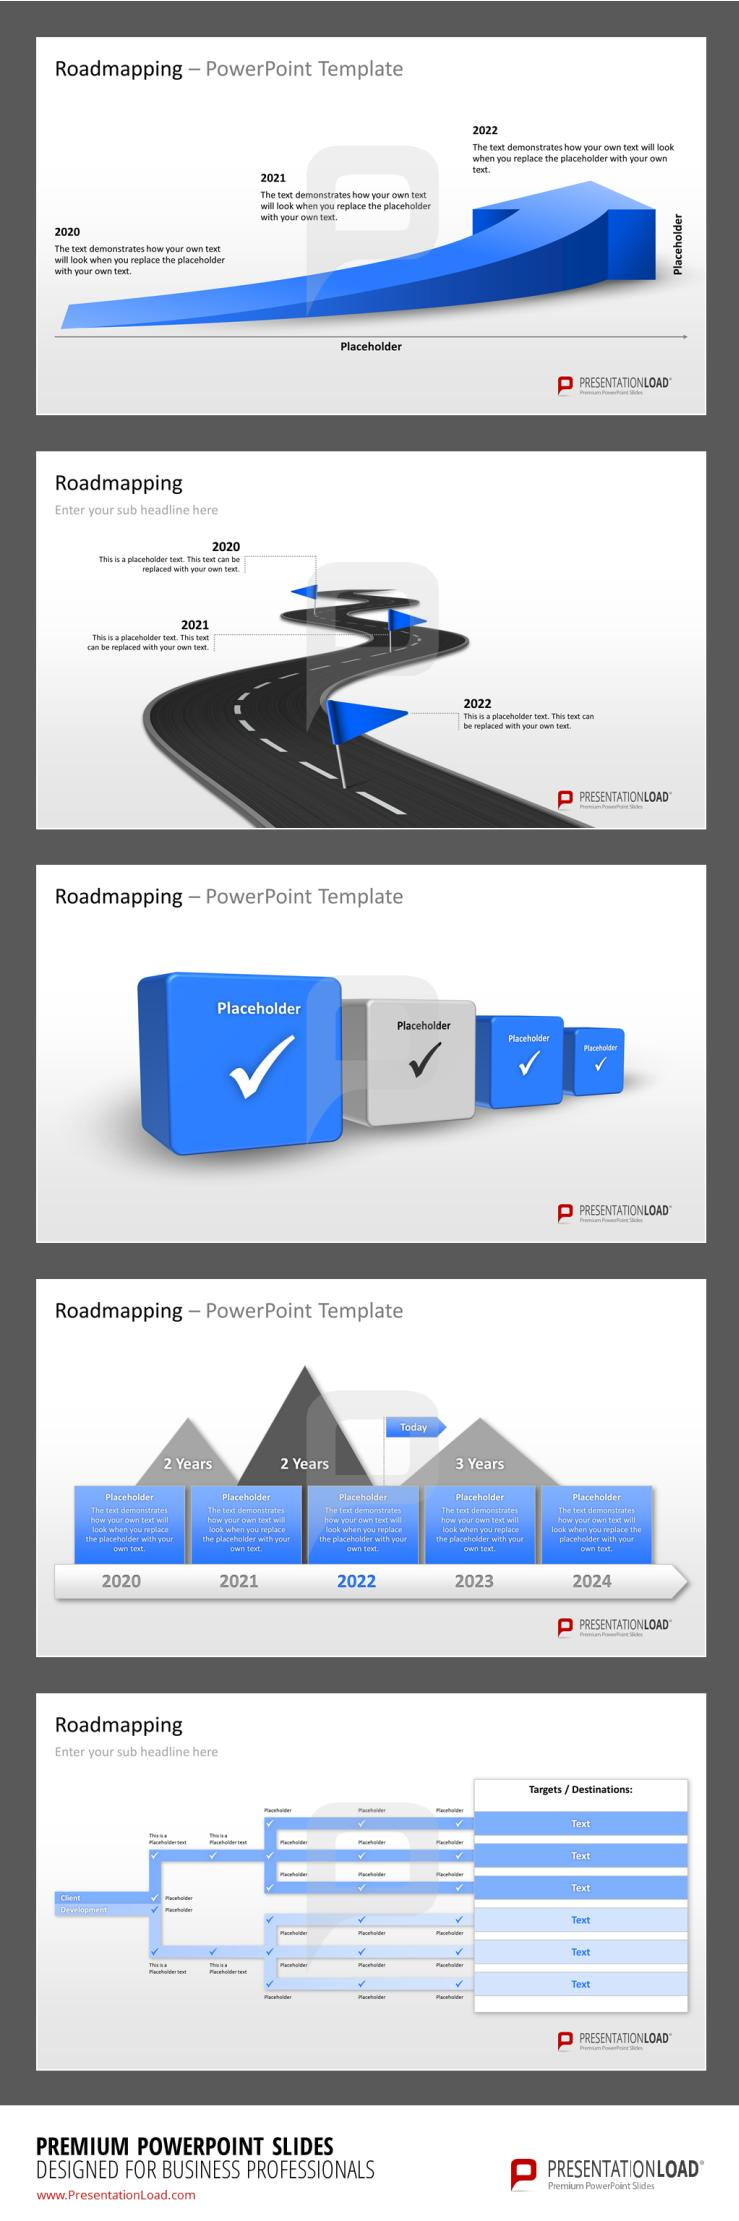 Roadmap Powerpoint Templates Presentationload HttpWww